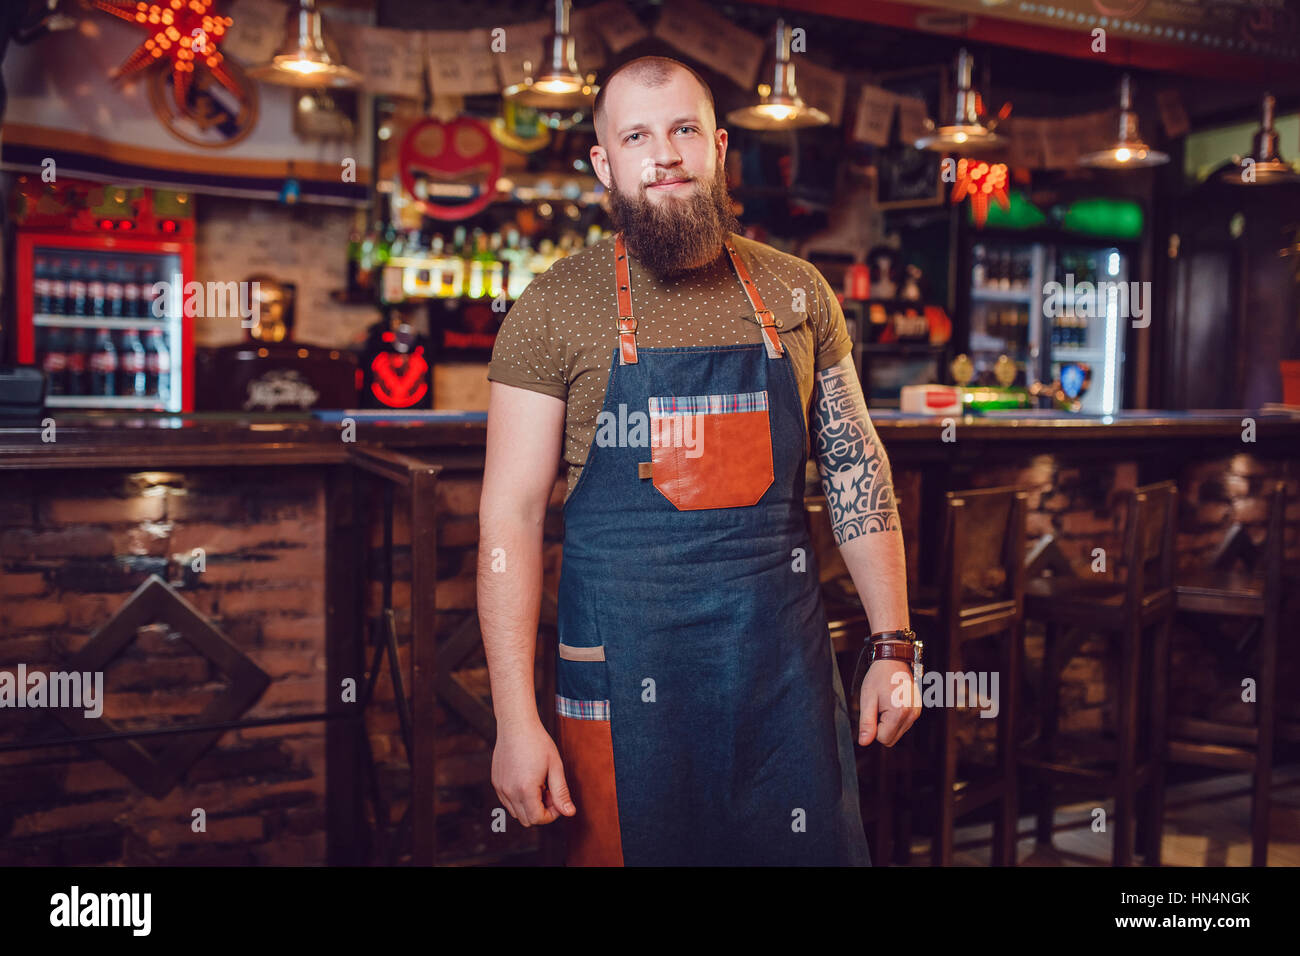 Bearded barman with tattoos and watches wearing an apron standing near the bar. Stock Photo